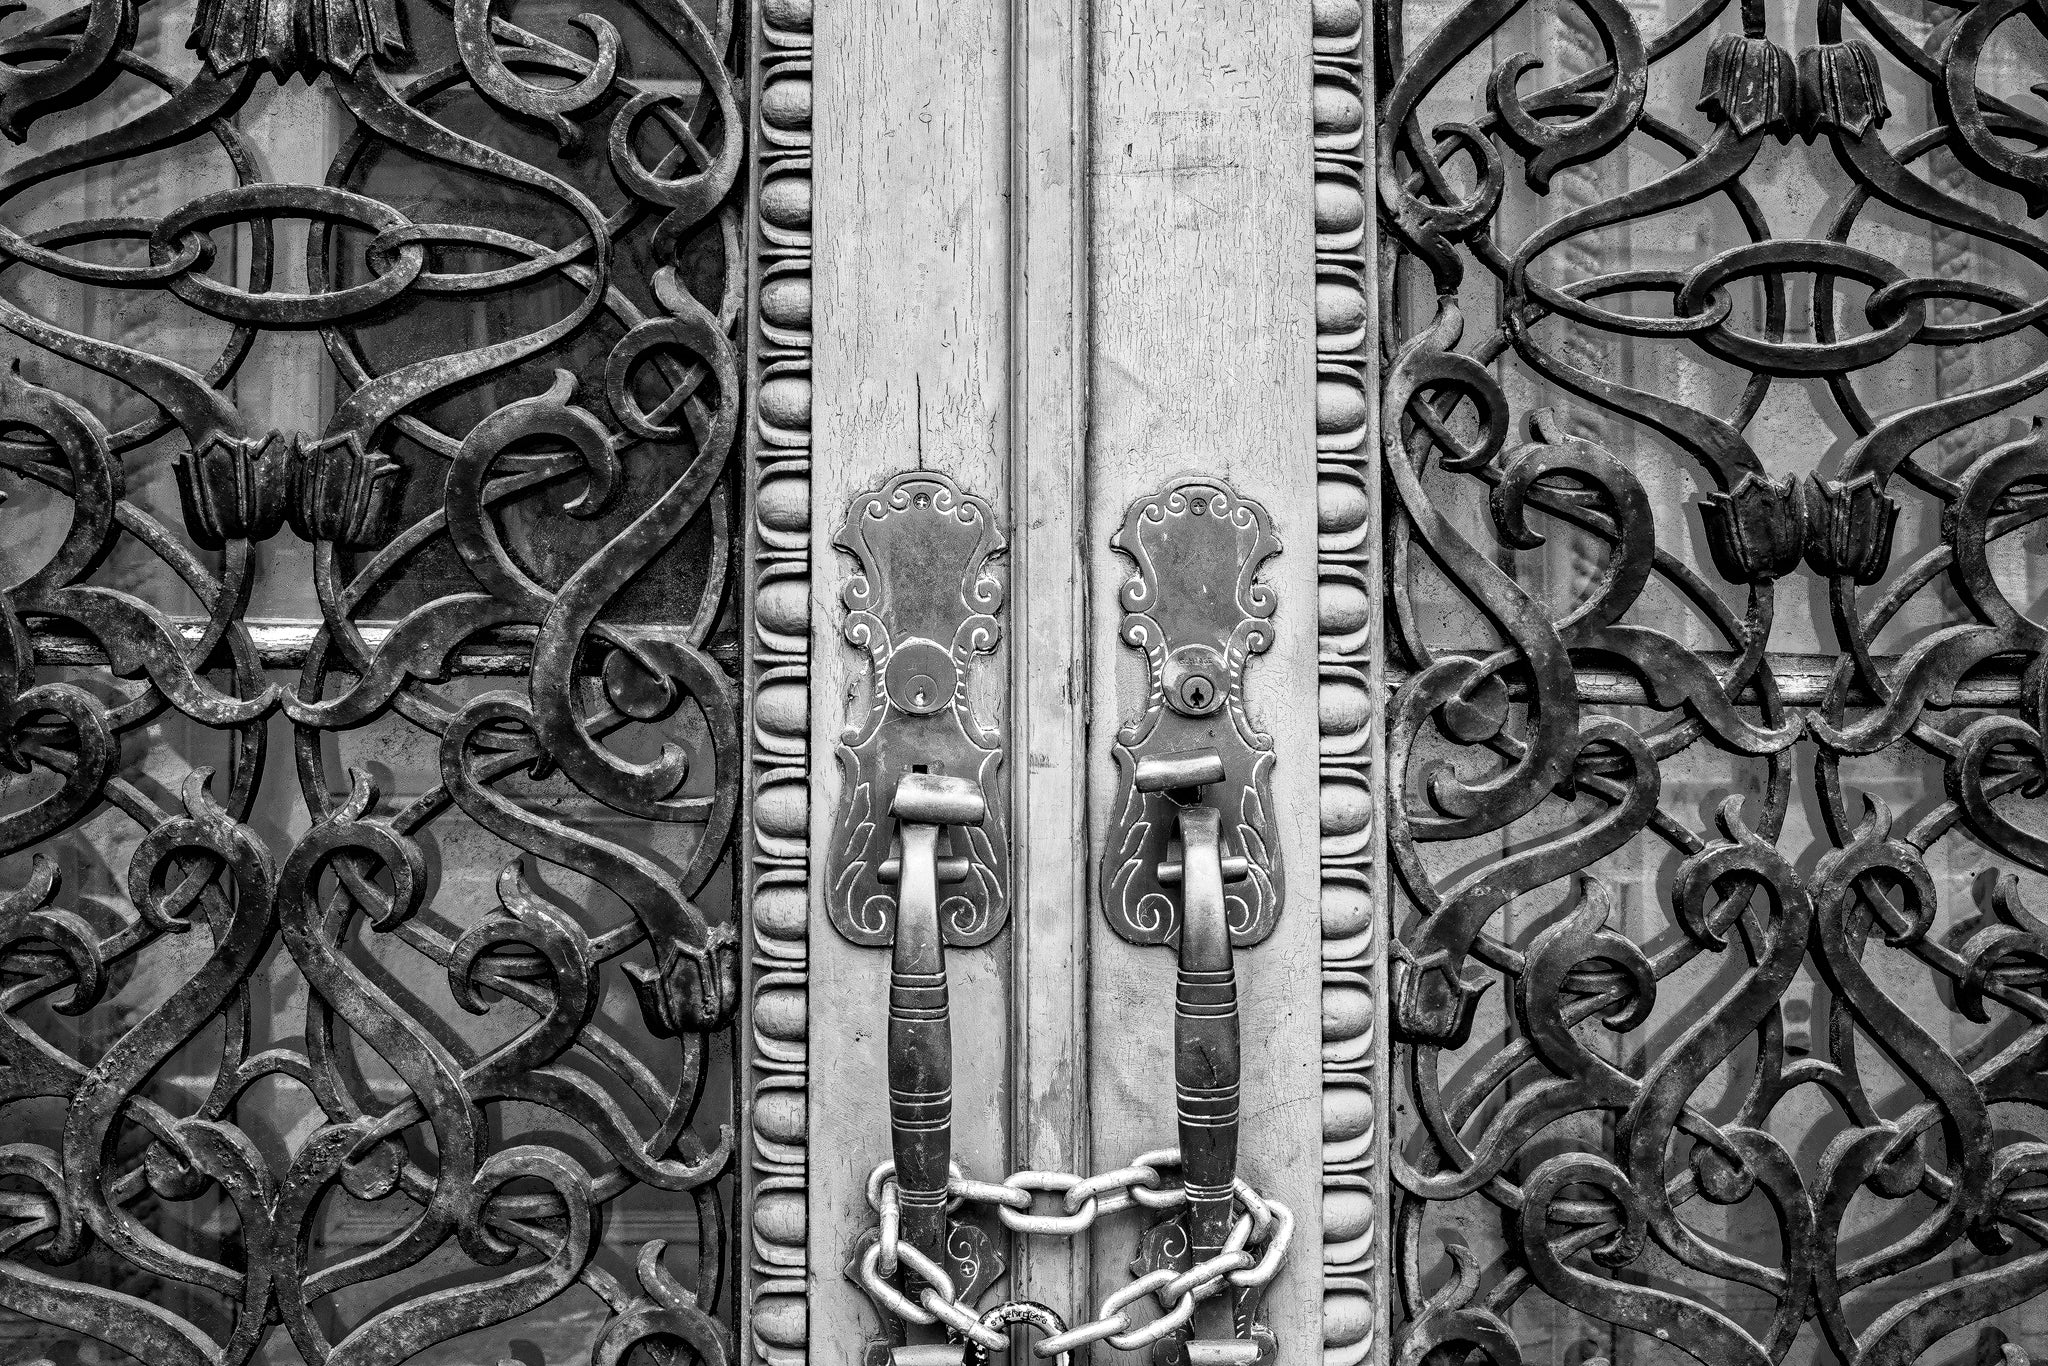 Charleston Farmers and Exchange Bank (Ironwork Detail) - Black and White Photograph by Keith Dotson. Buy a fine art print.